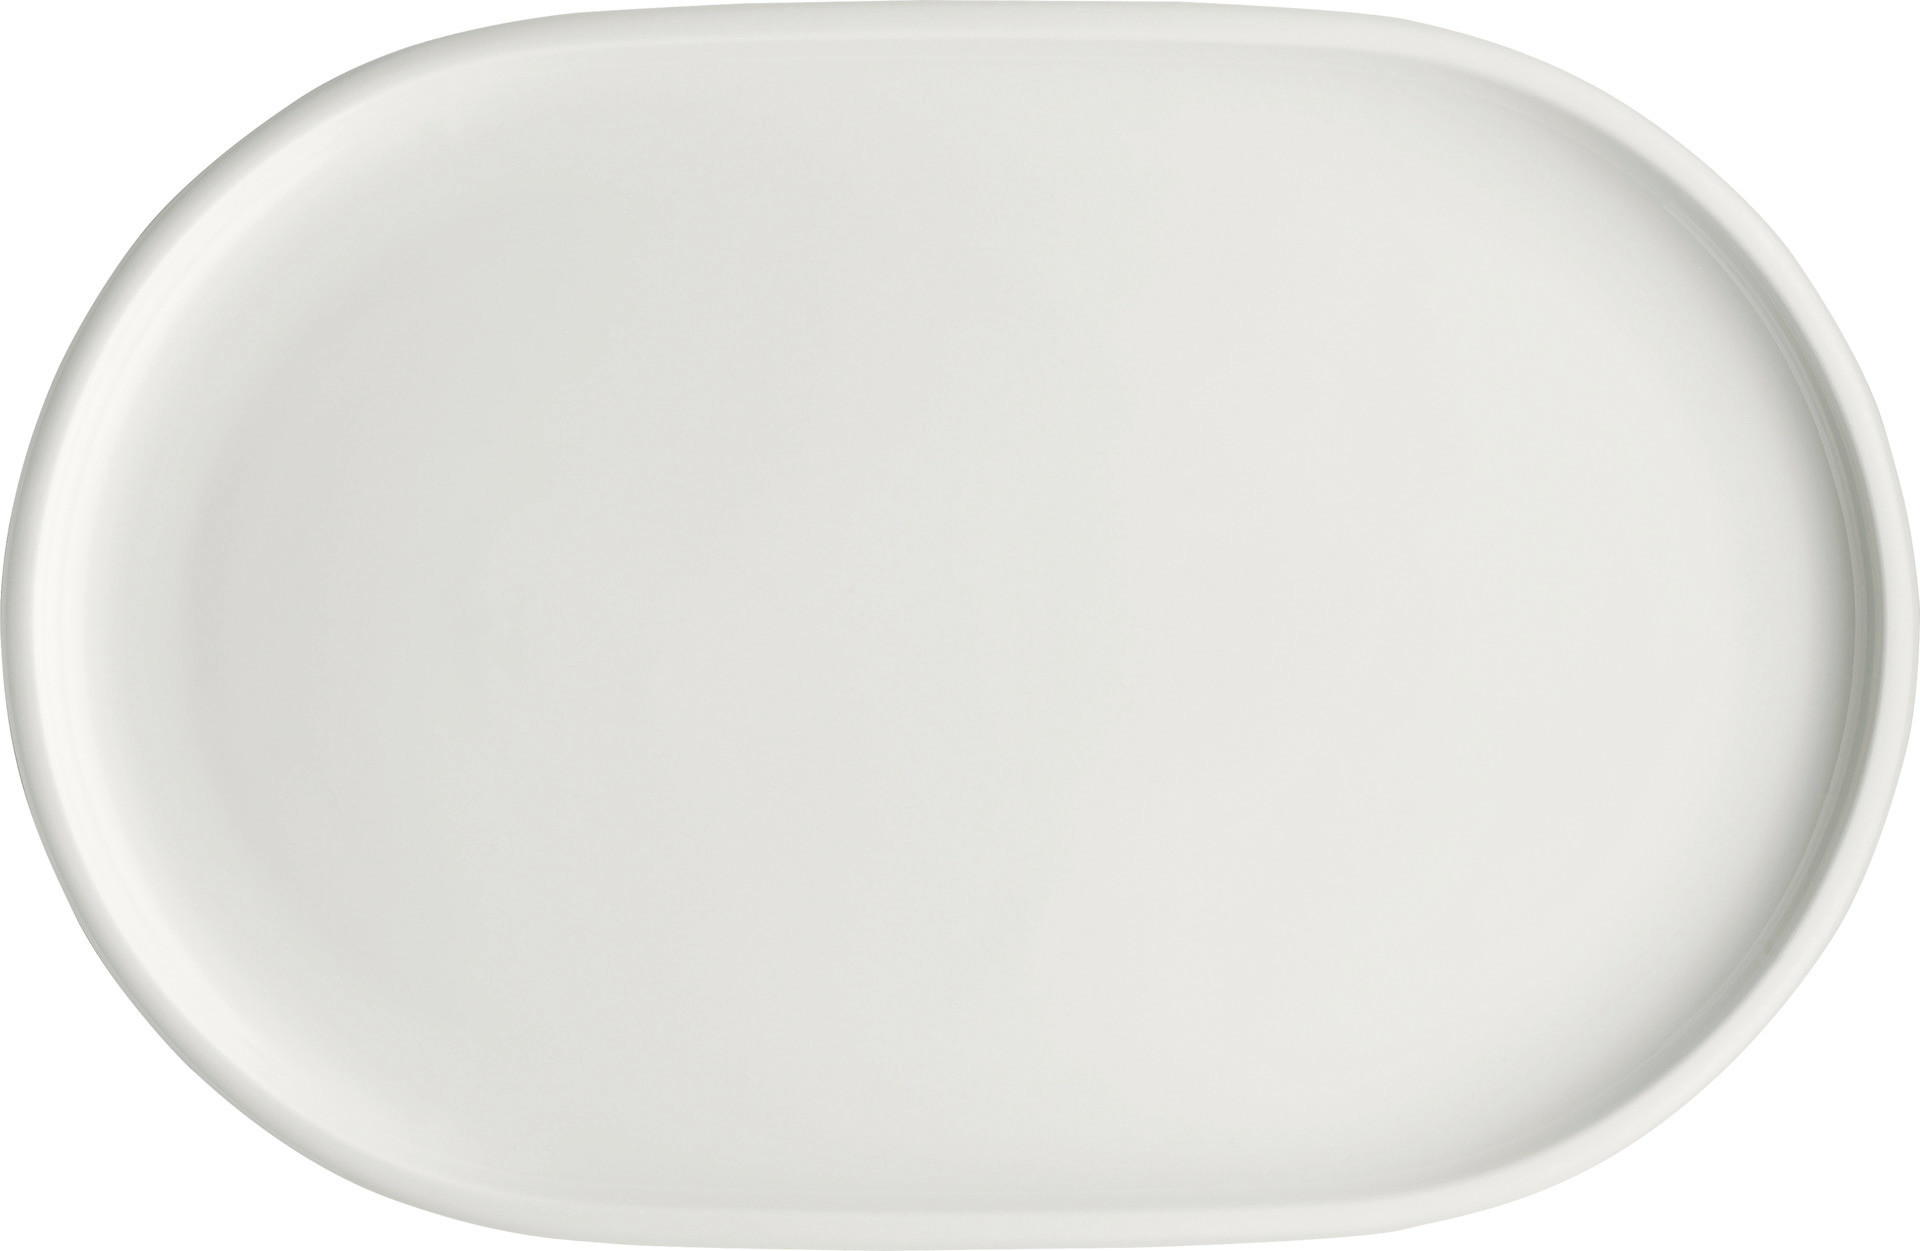 Shiro, Coupplatte oval 360 x 235 mm